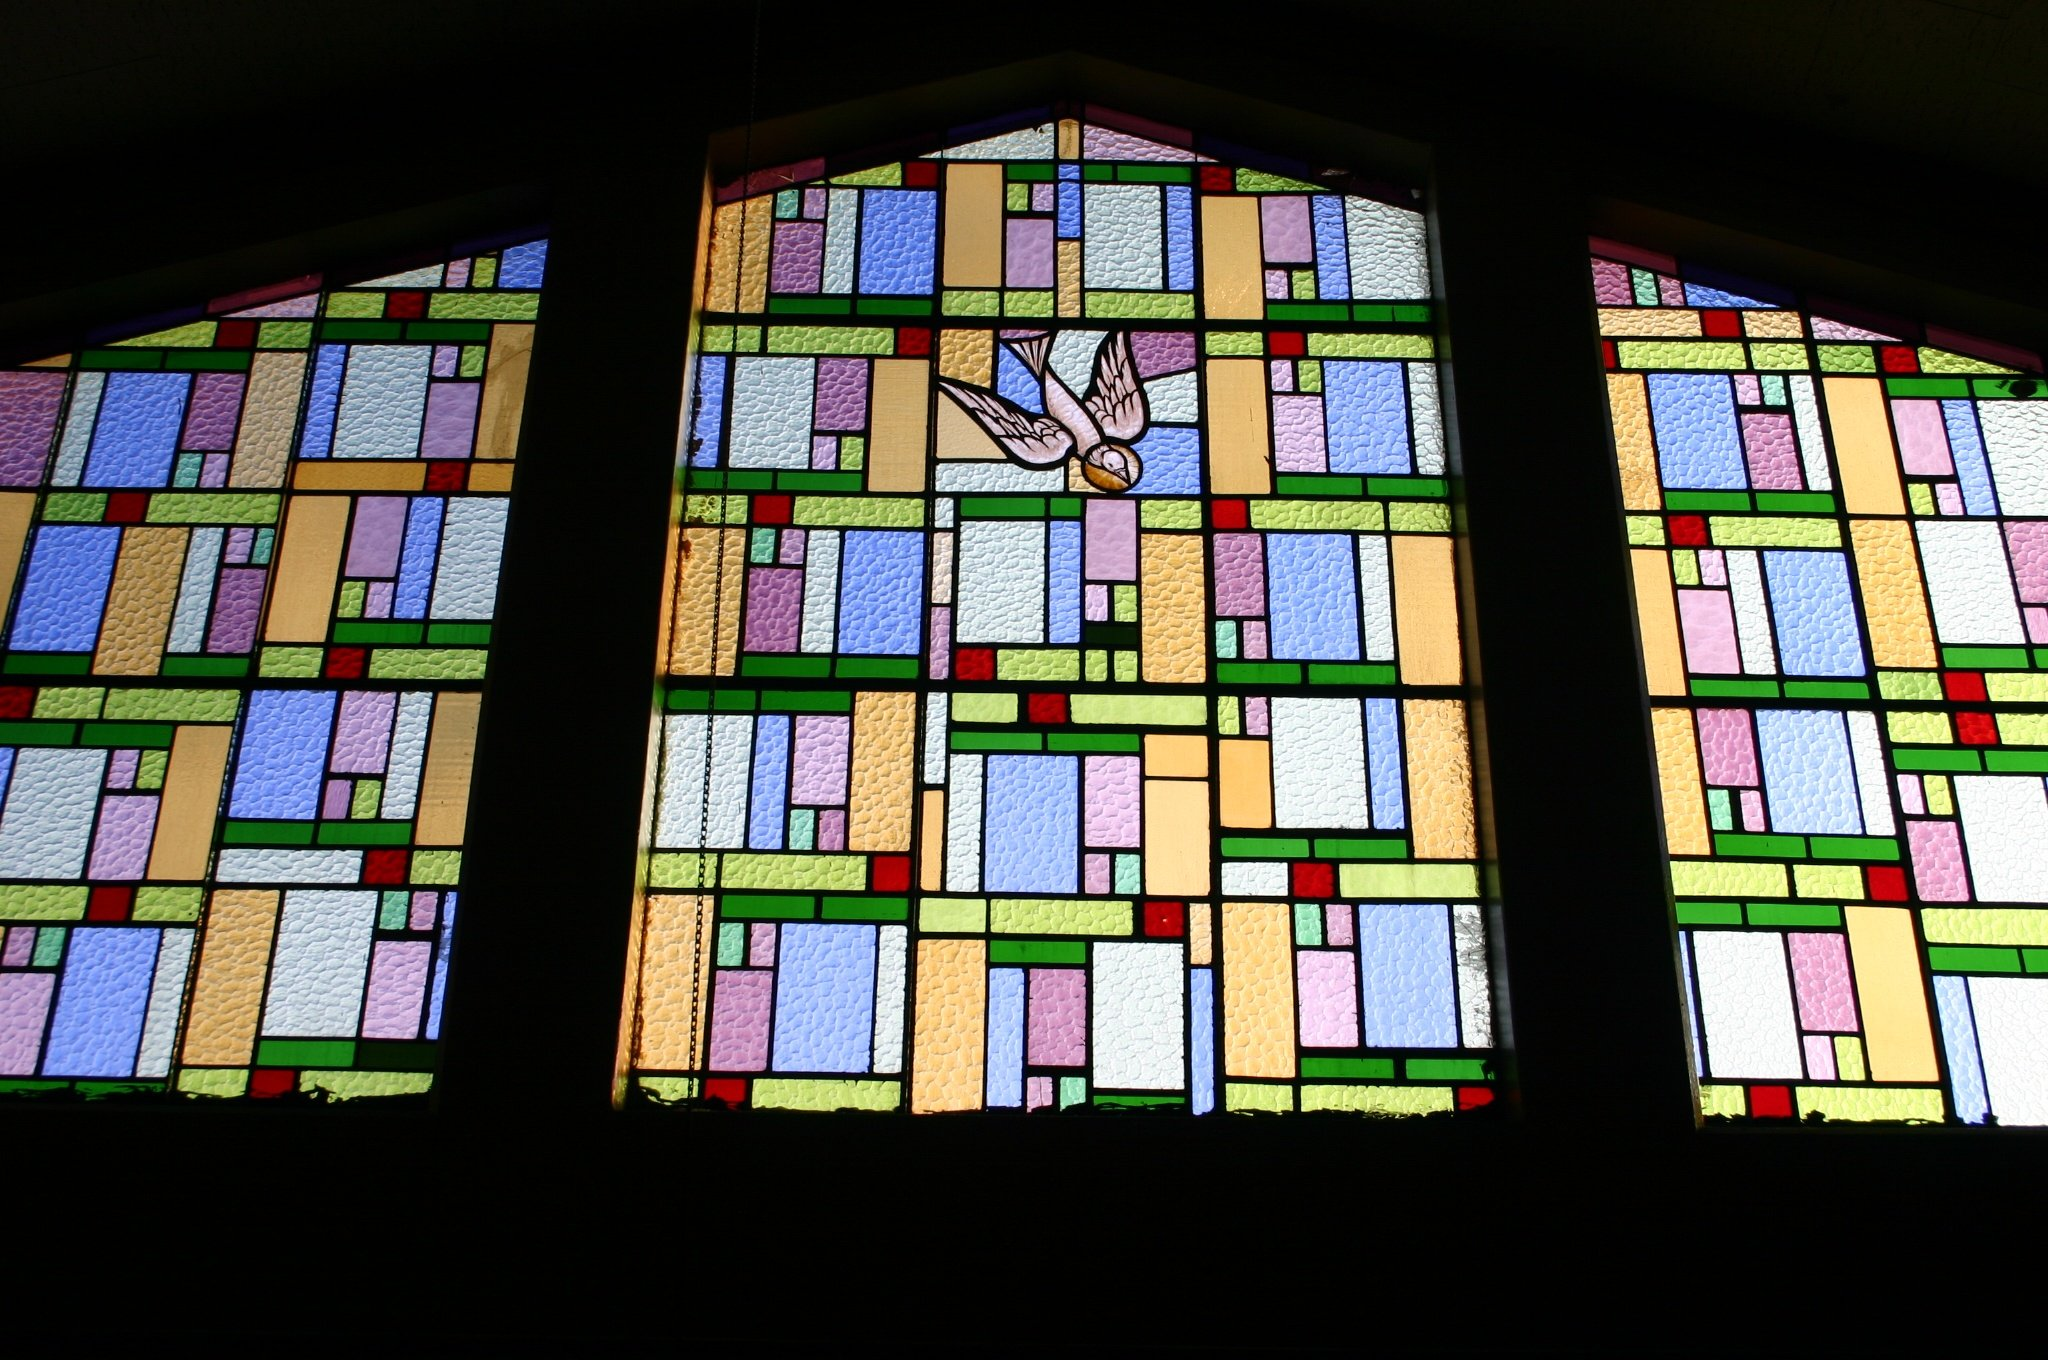 https://0201.nccdn.net/1_2/000/000/0f5/c0f/Stained-glass-window-at-back-of-sanctuary-2048x1360.jpg